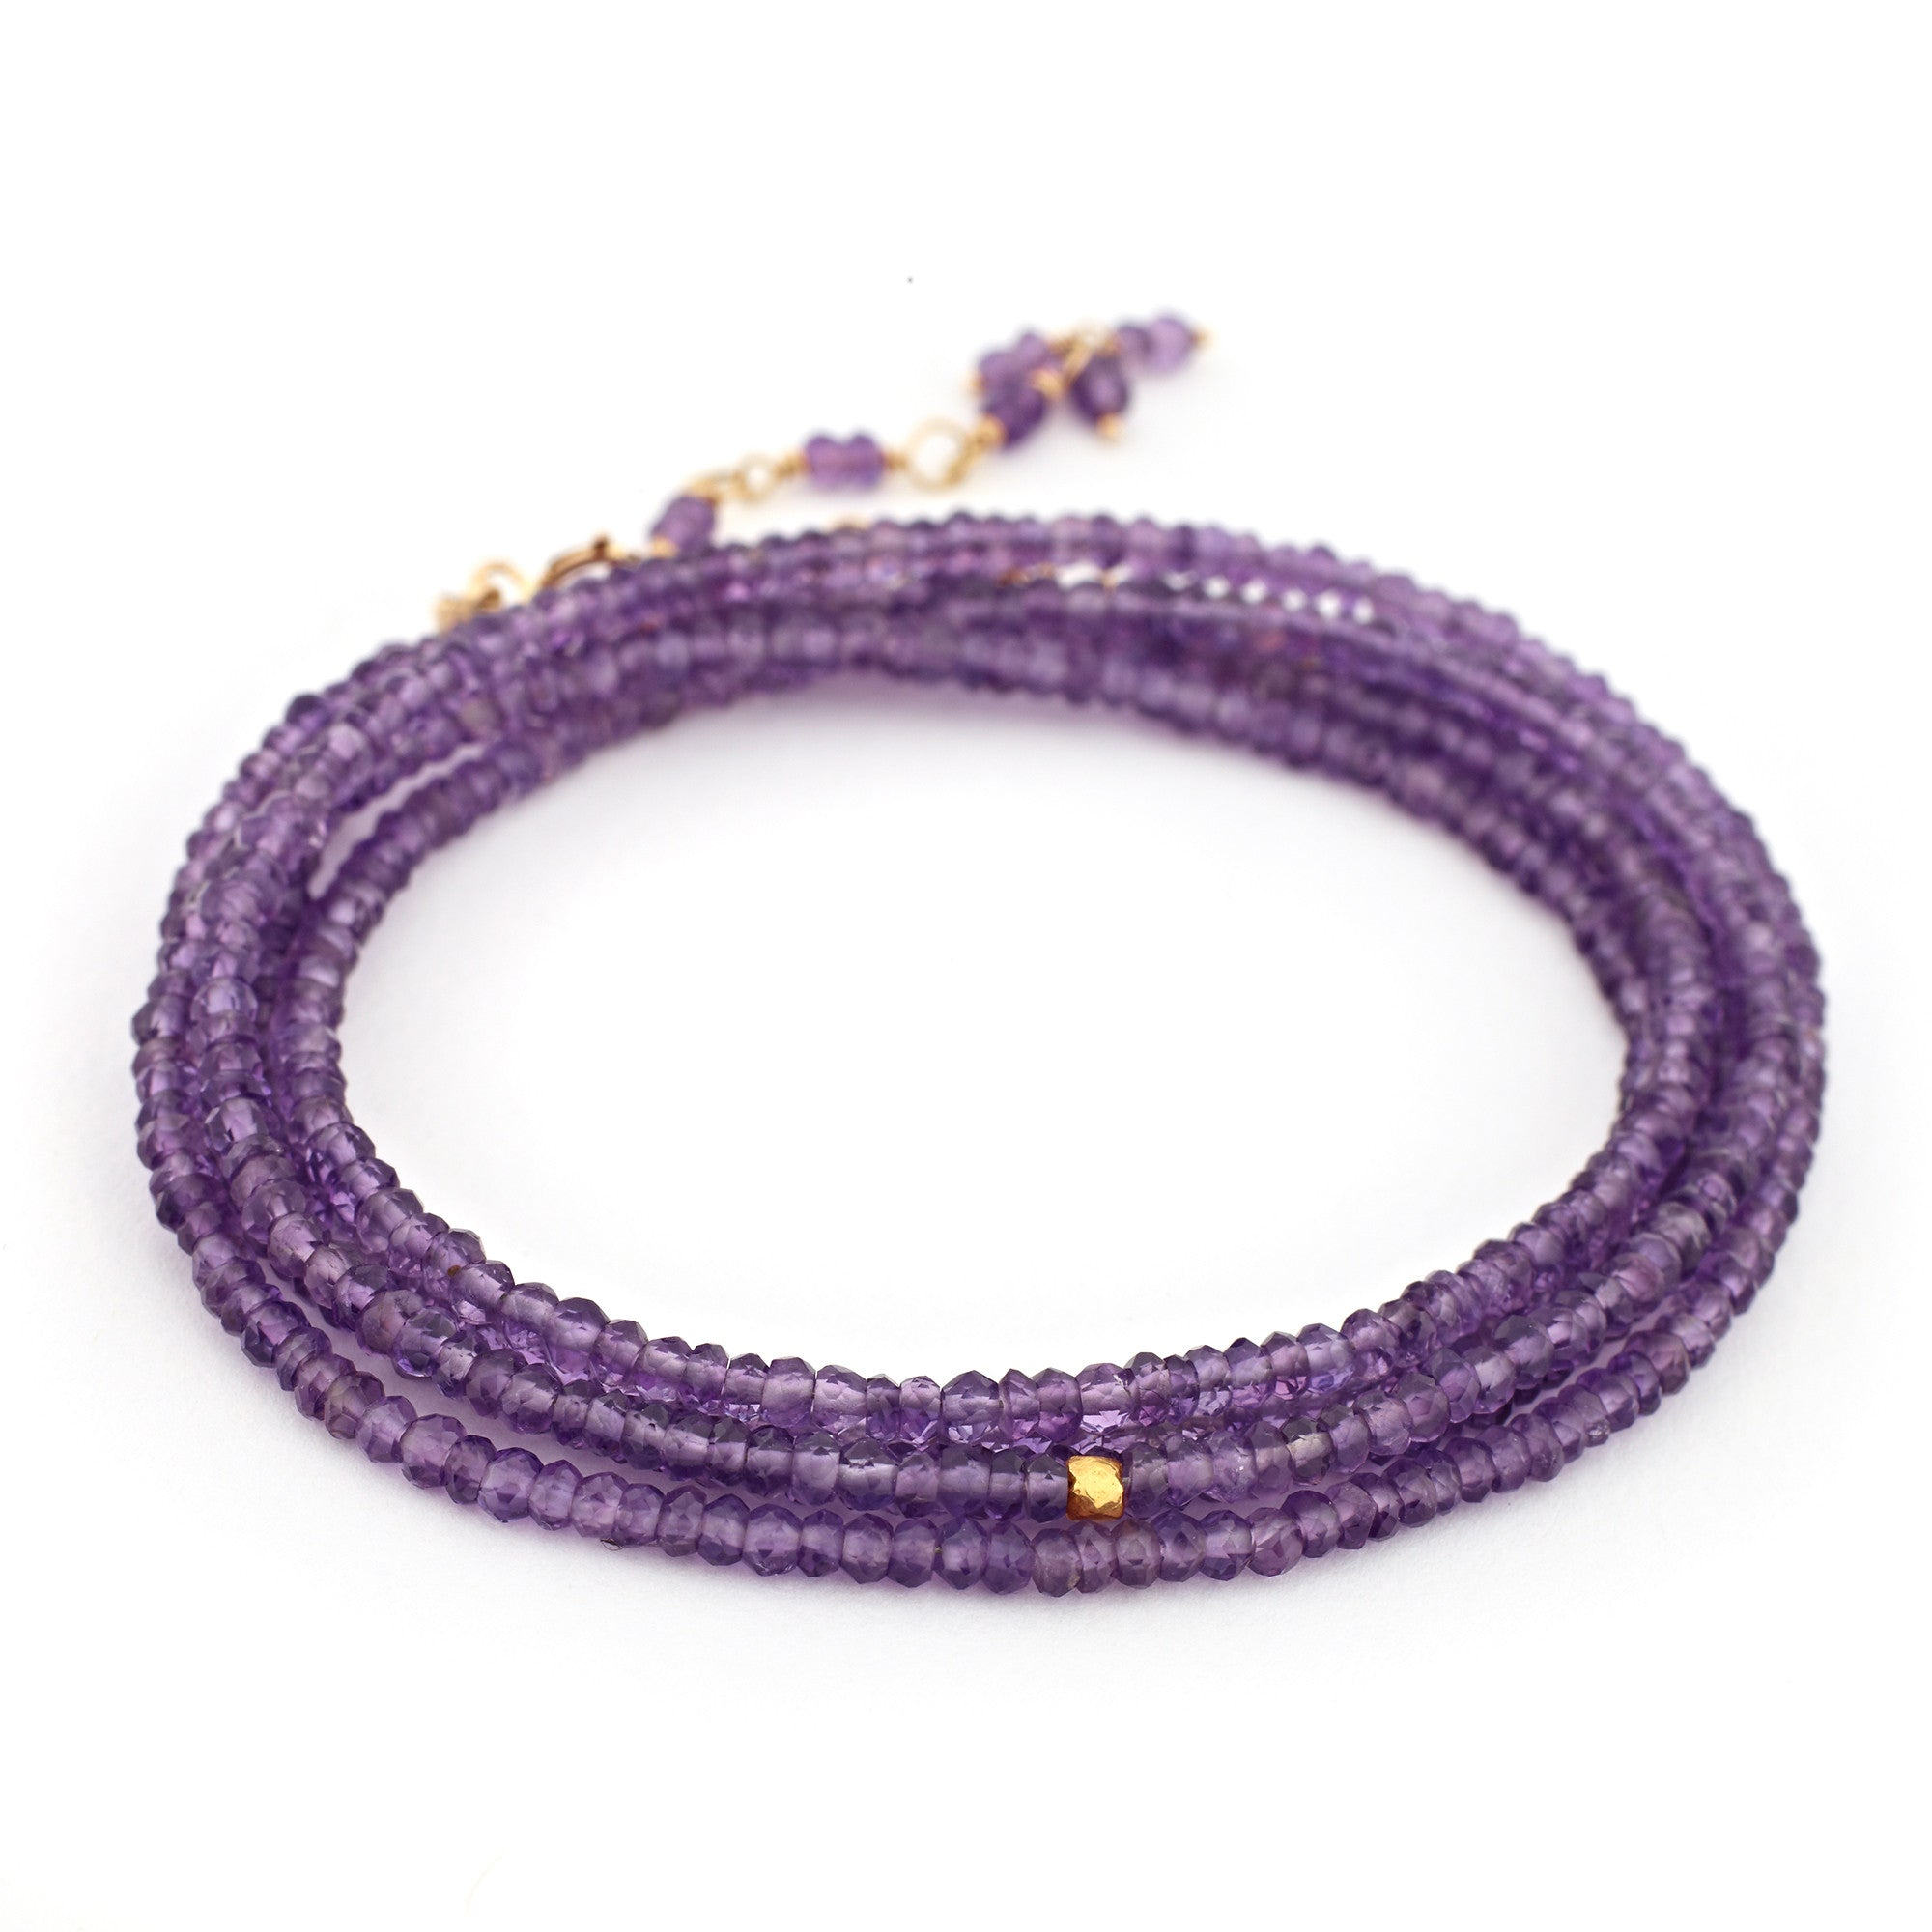 "Anne Sportun Amethyst Beaded Wrap Bracelet & Necklace 34"" B098G-AME"